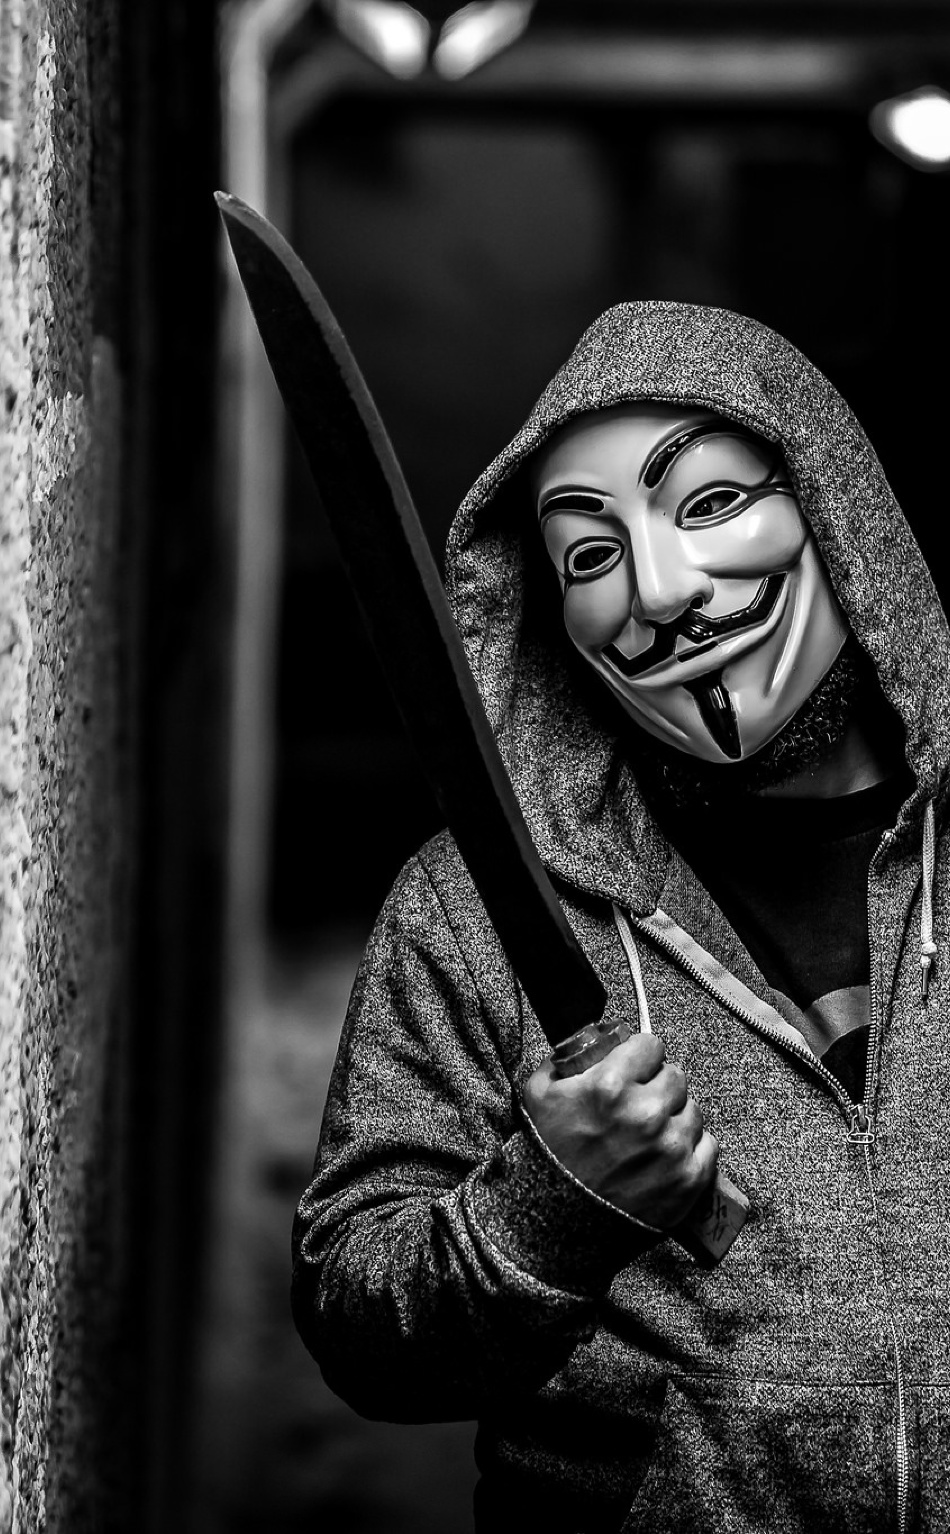 Anonymous Mask Wallpaper - Iphone Wallpaper Hd Men , HD Wallpaper & Backgrounds